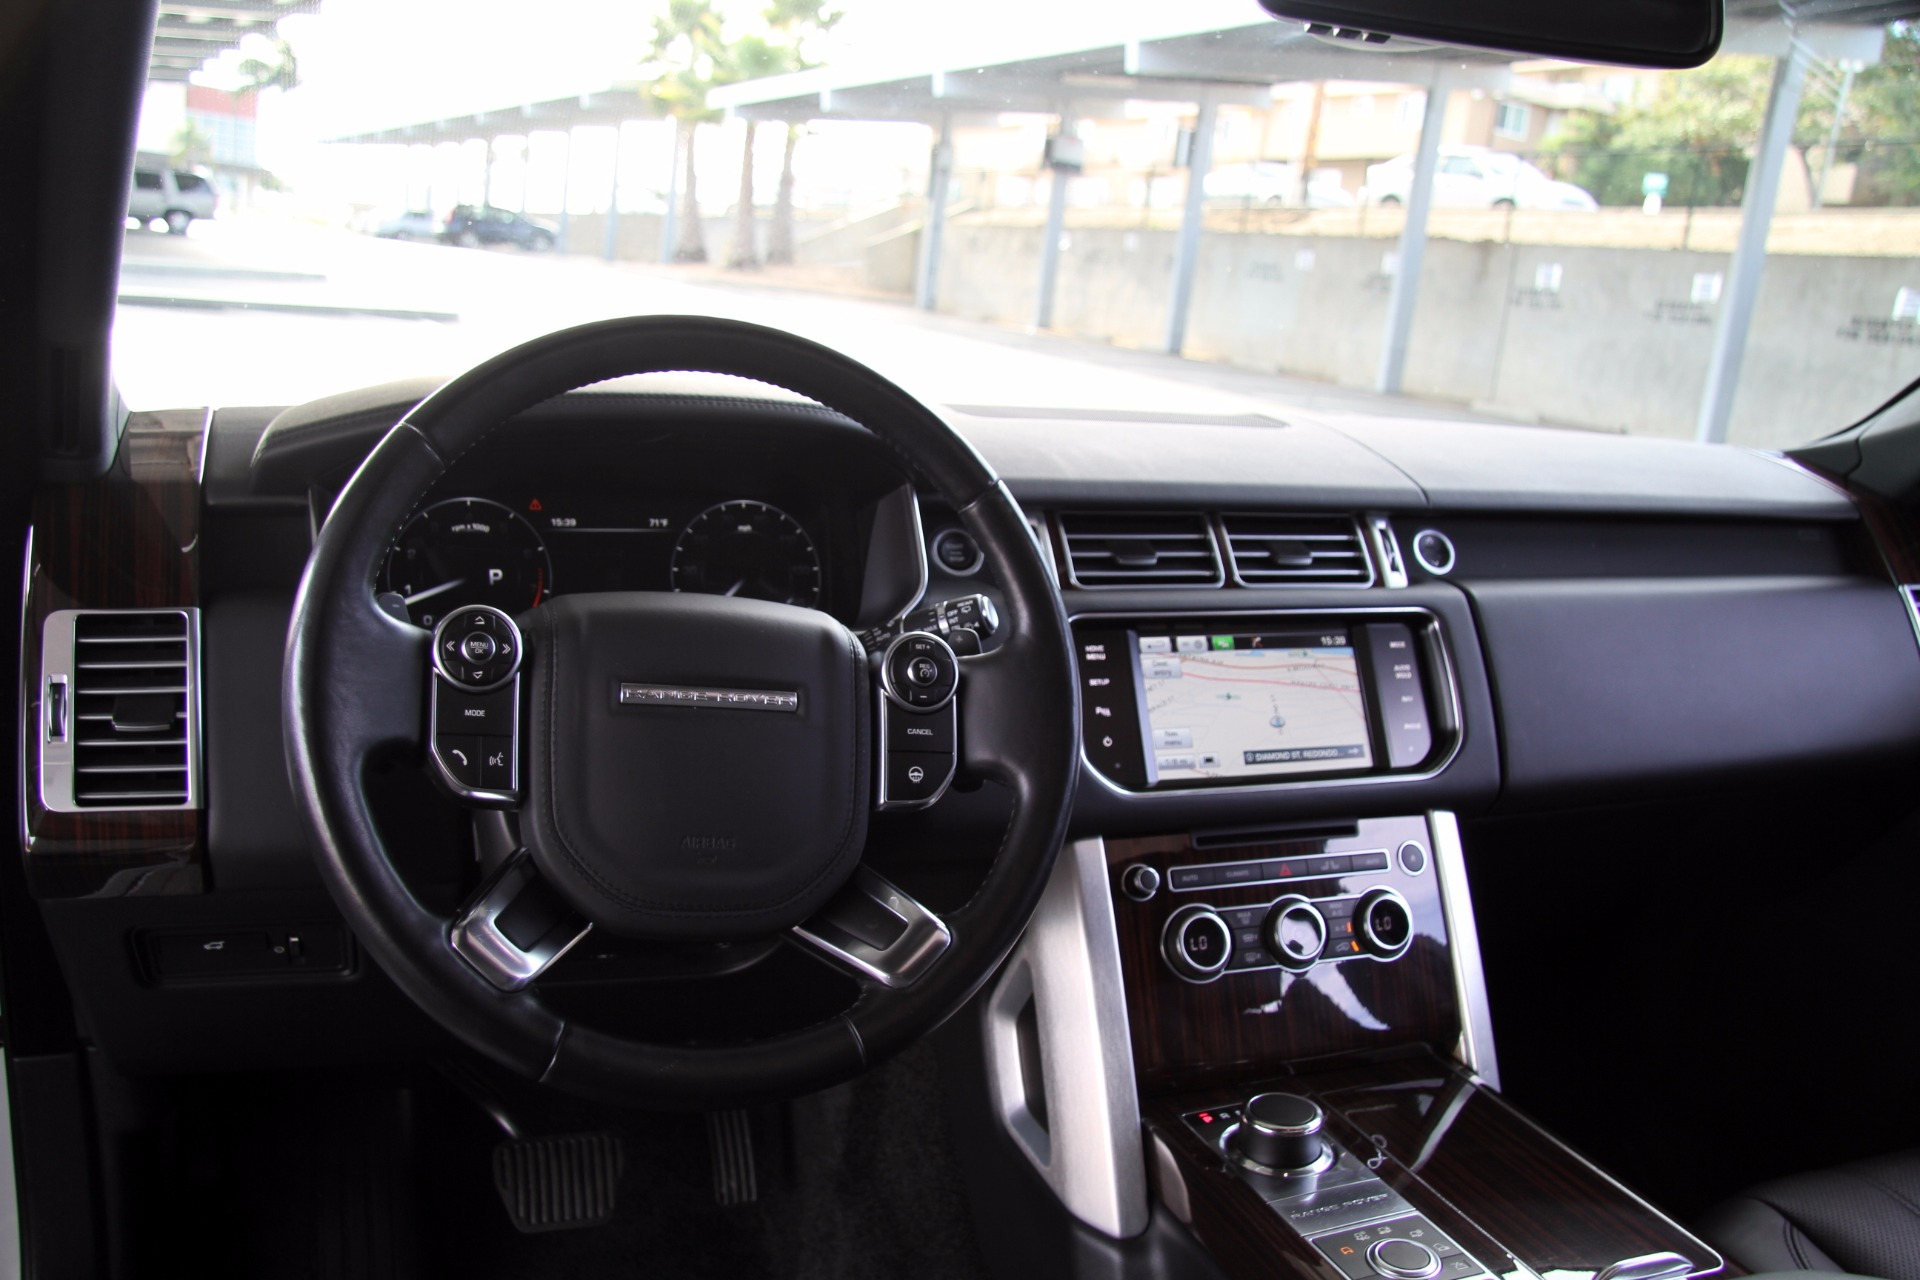 2014 Land Rover Range Rover HSE Stock 6041 for sale near Redondo